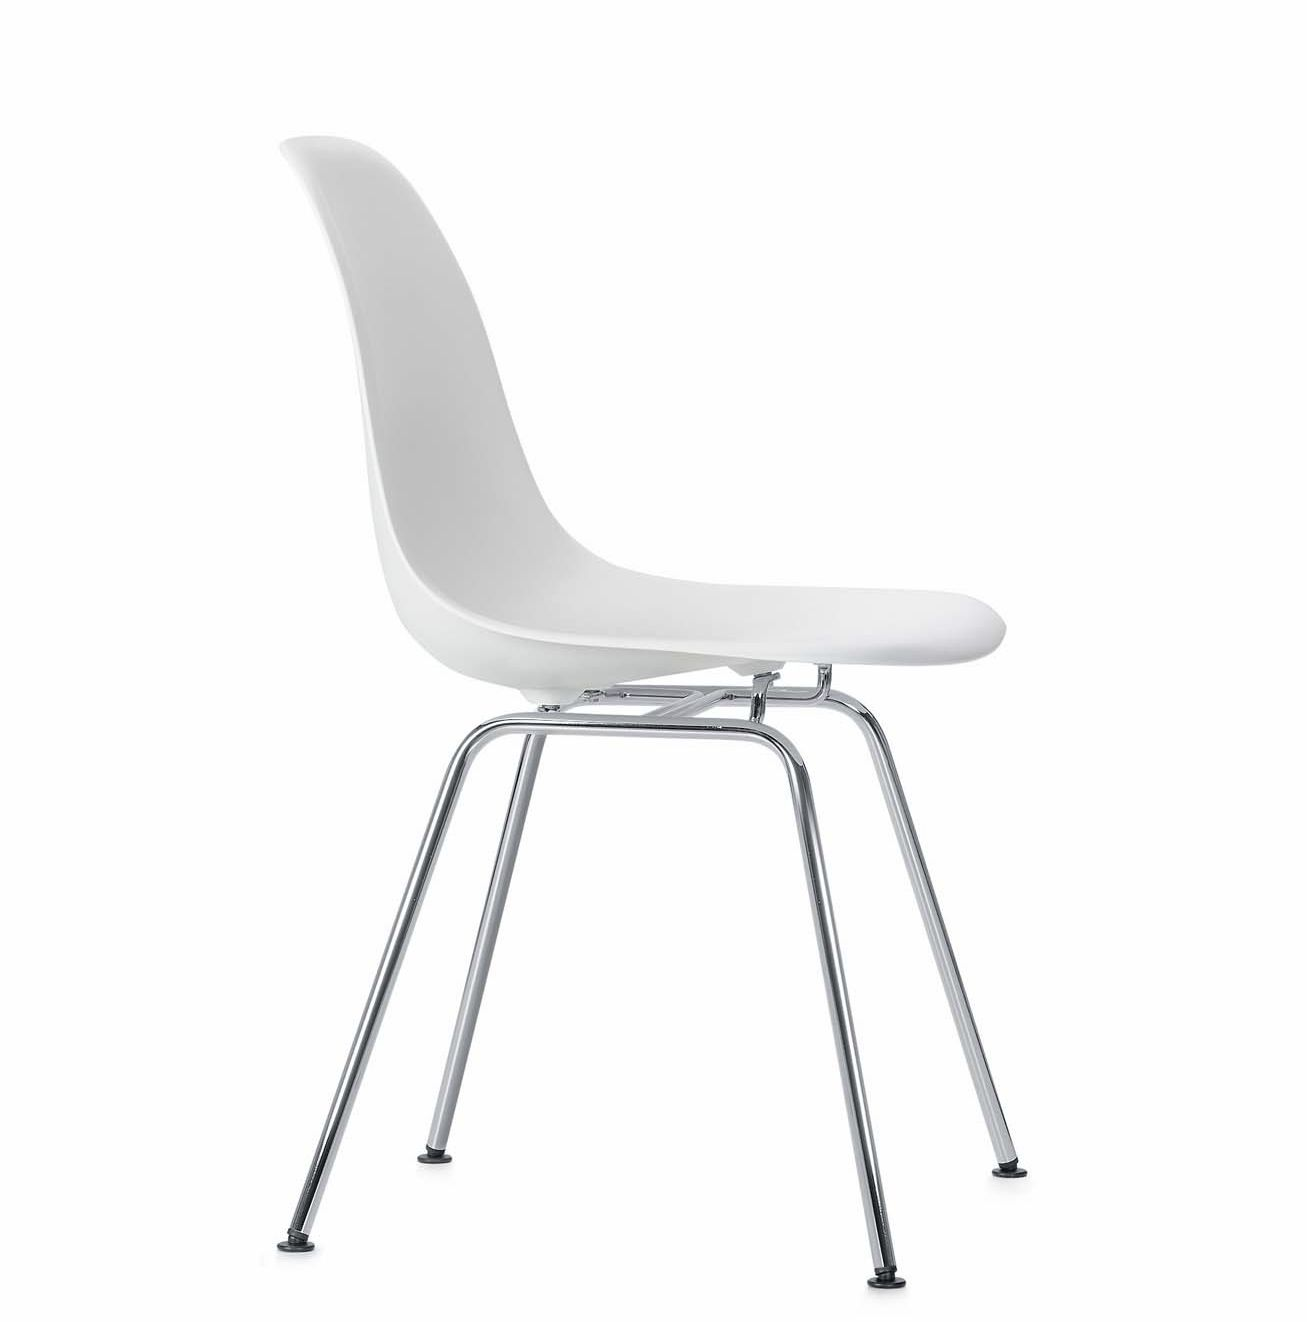 Chaises Vitra Soldes Vitra Chaise Eames Stunning Chaise Imitation Eames Belle Dsw